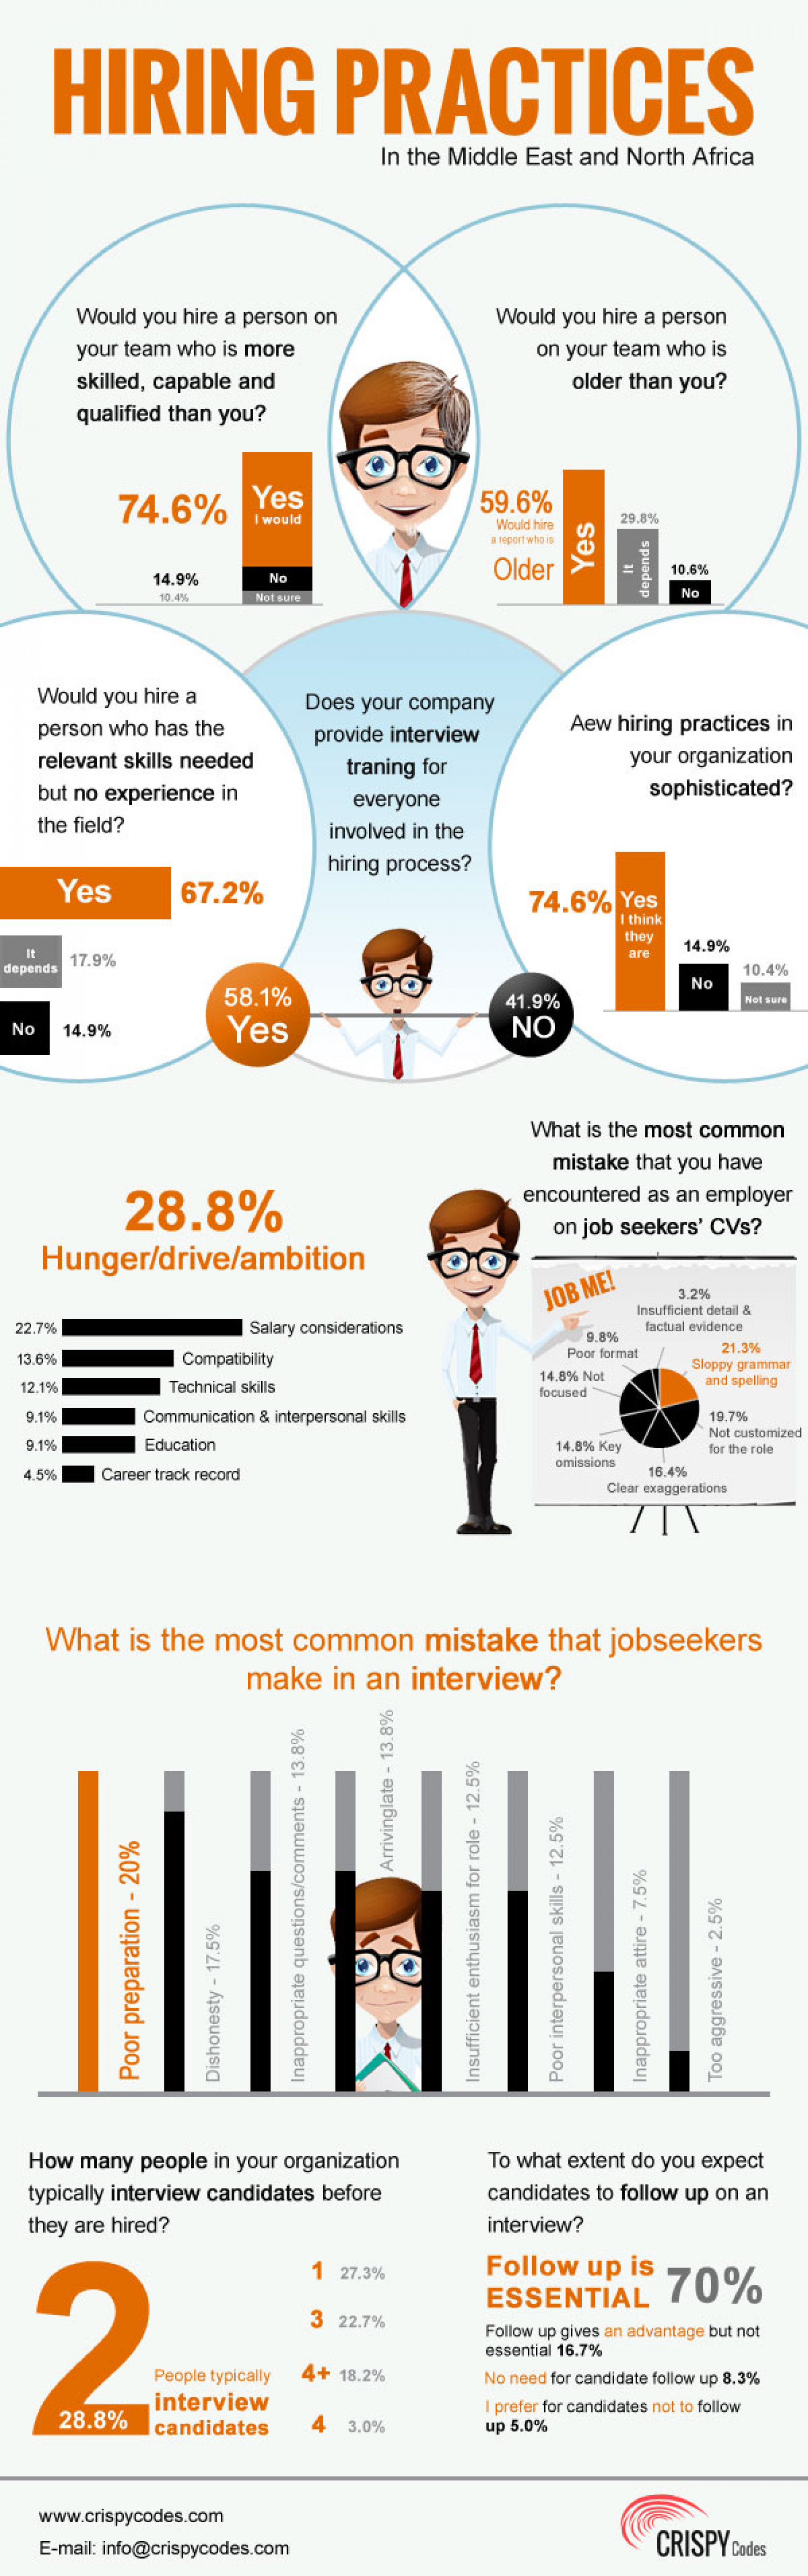 Hiring Practicies in the Middle East and North Africa Infographic